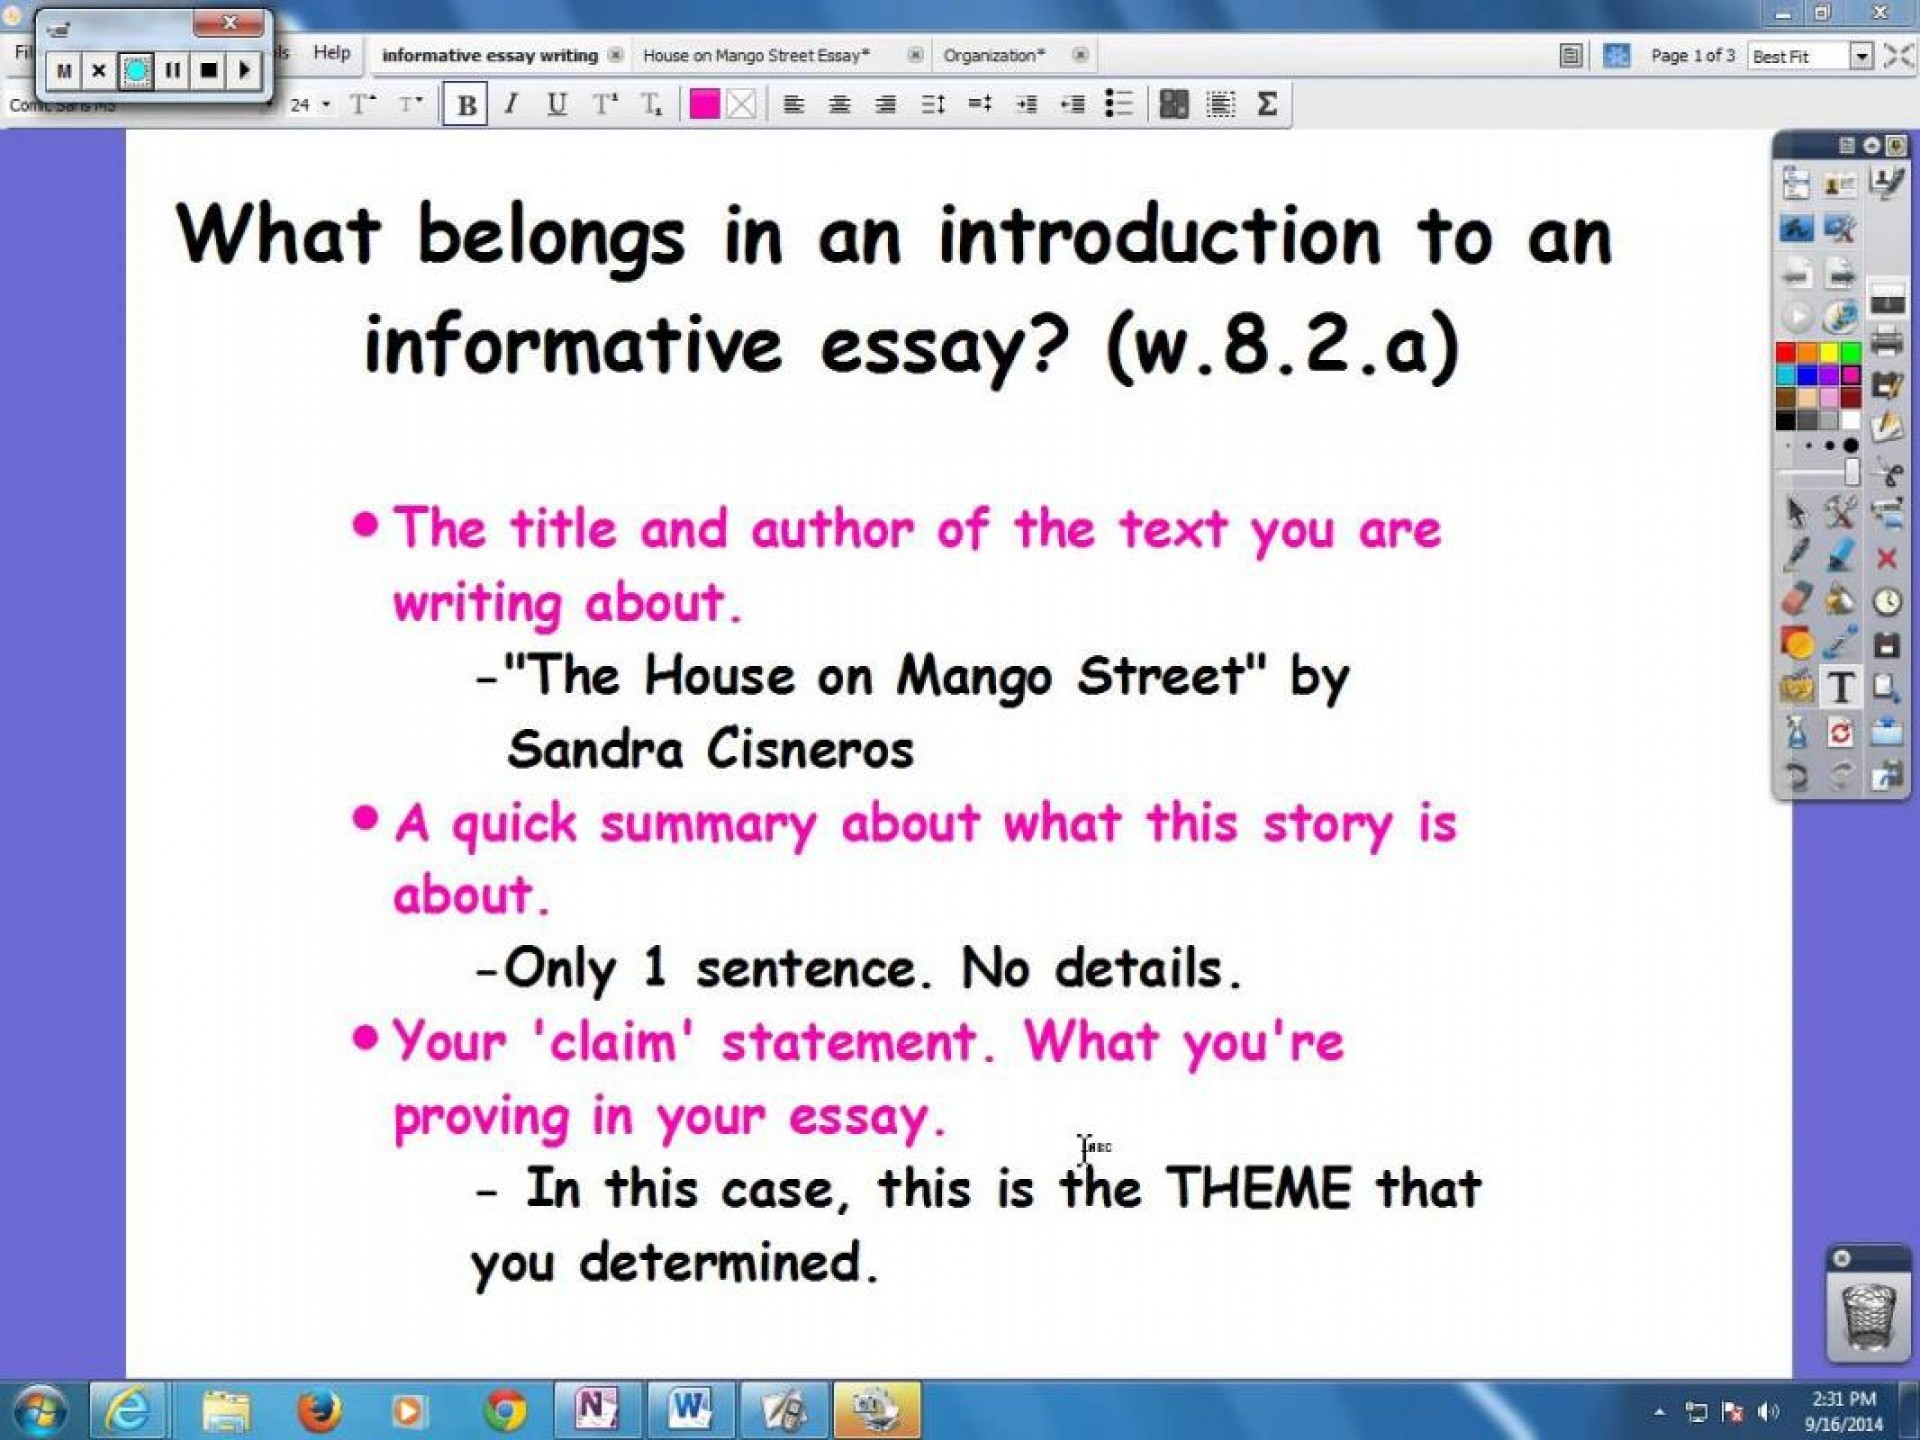 008 Essay Example How To Write An Informative Maxresdefault What Top Is The Main Purpose Of 1920